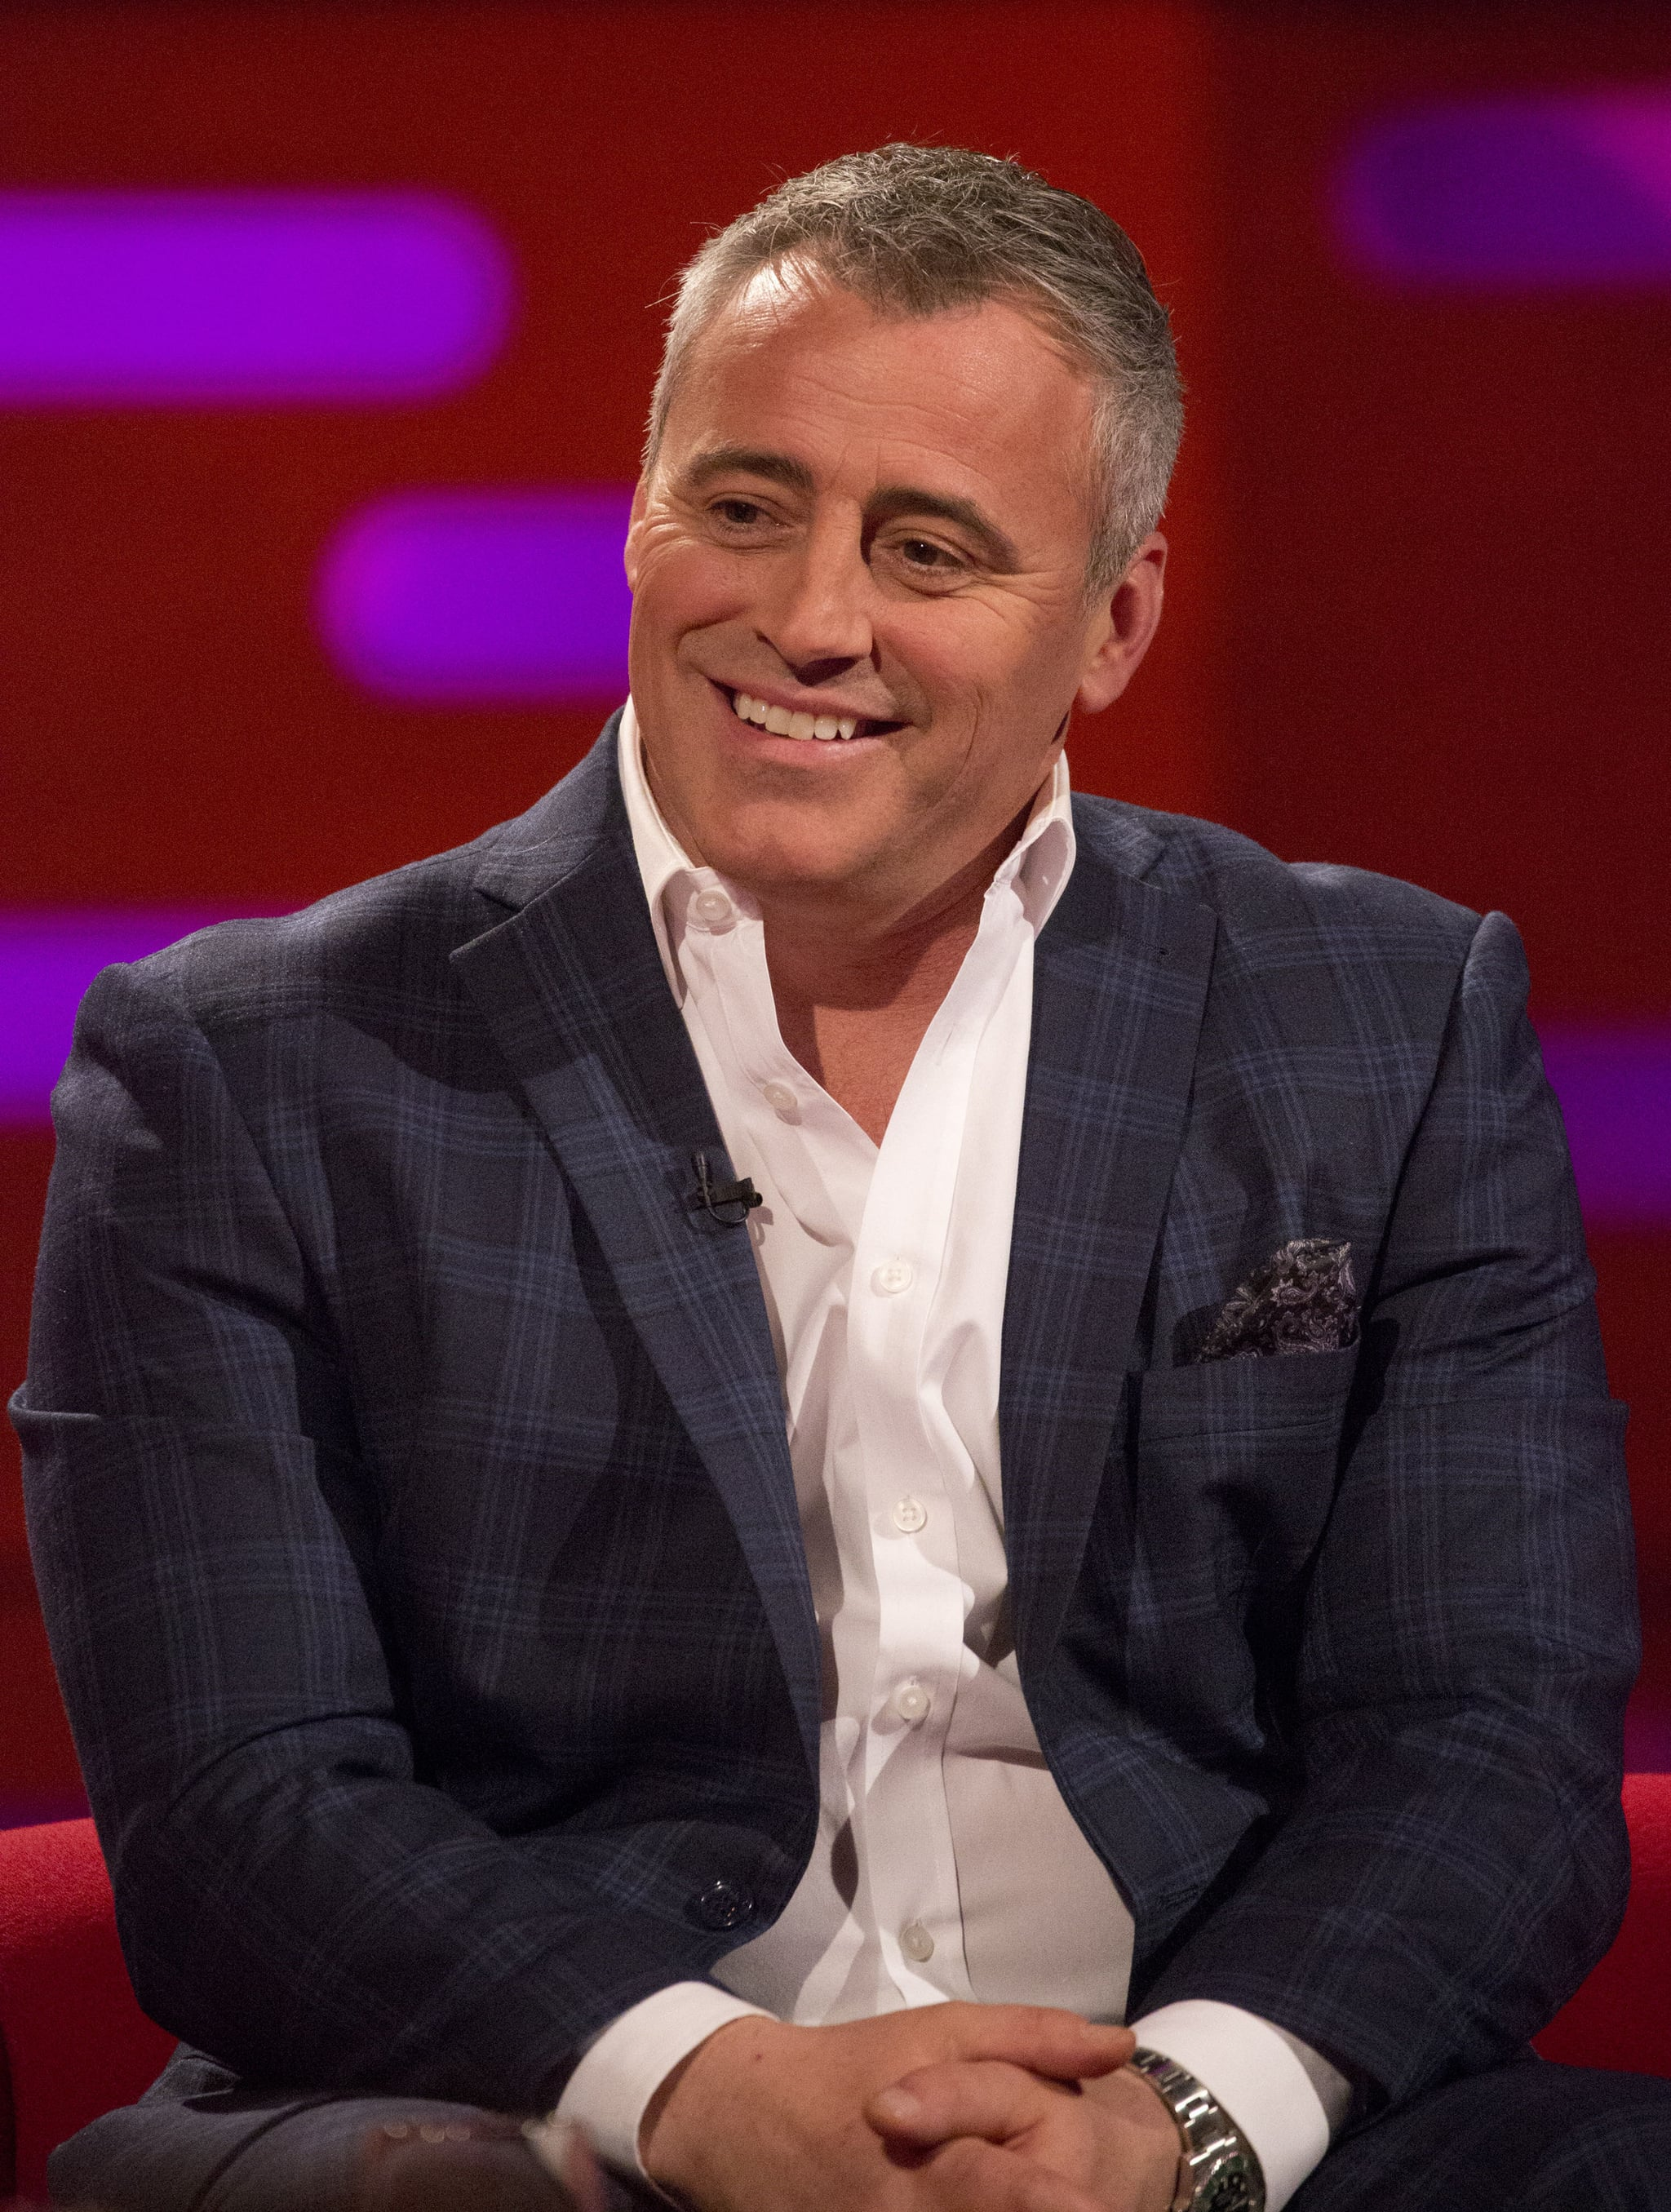 Matt LeBlanc during the filming of the Graham Norton Show at The London Studios, south London, to be aired on BBC One on Friday evening. (Photo by Isabel Infantes/PA Images via Getty Images)